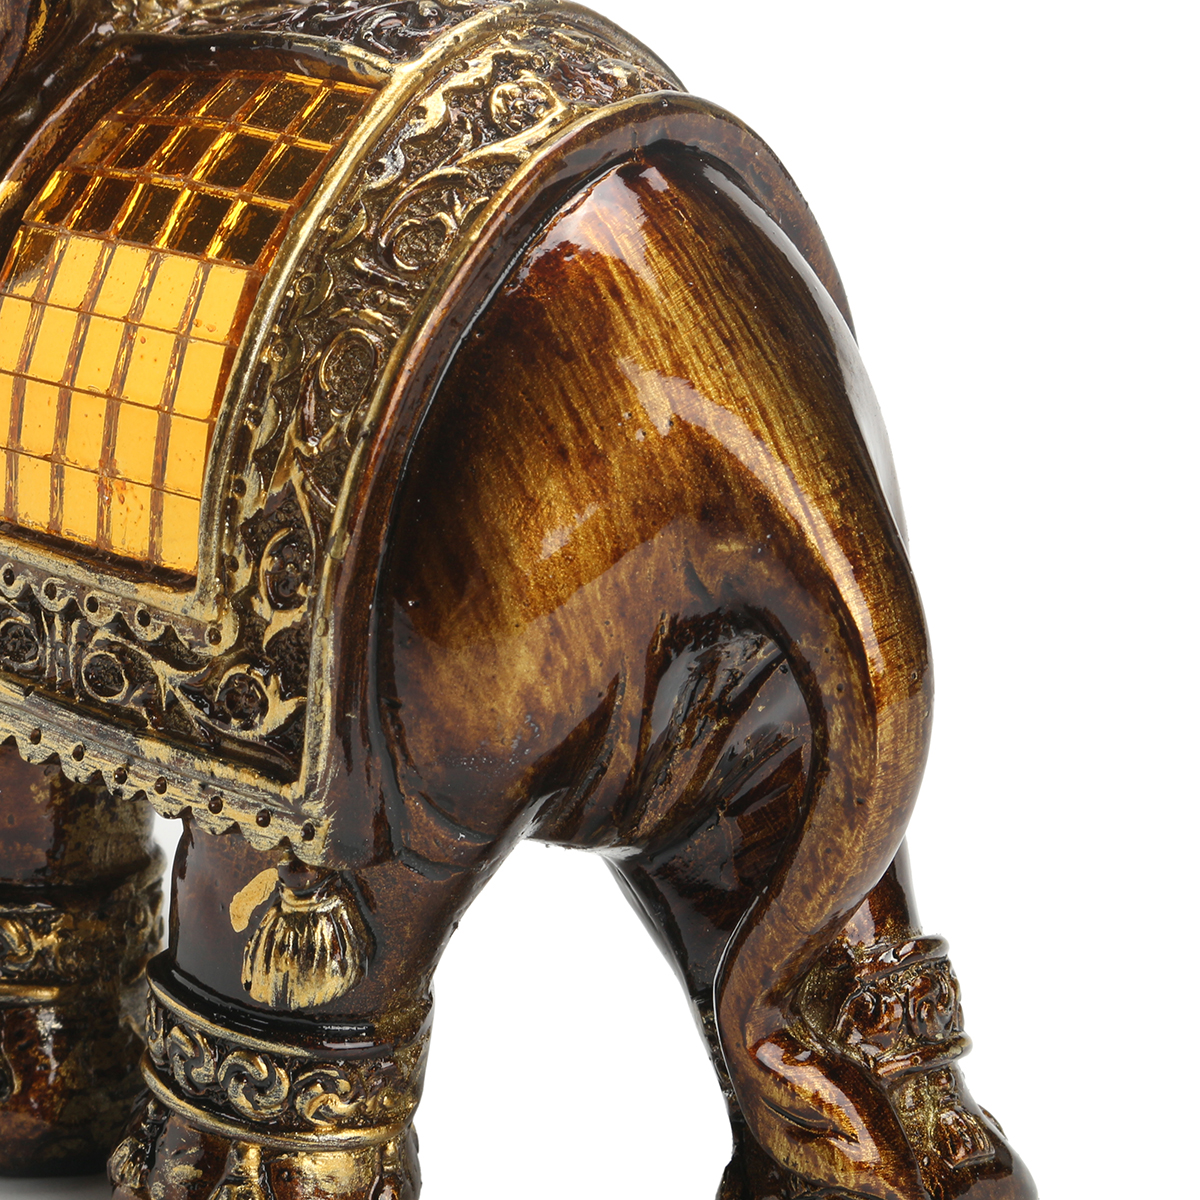 Resin Feng Shui Elegant Elephant Statue Lucky Wealth Figurine Home Decoration Decor